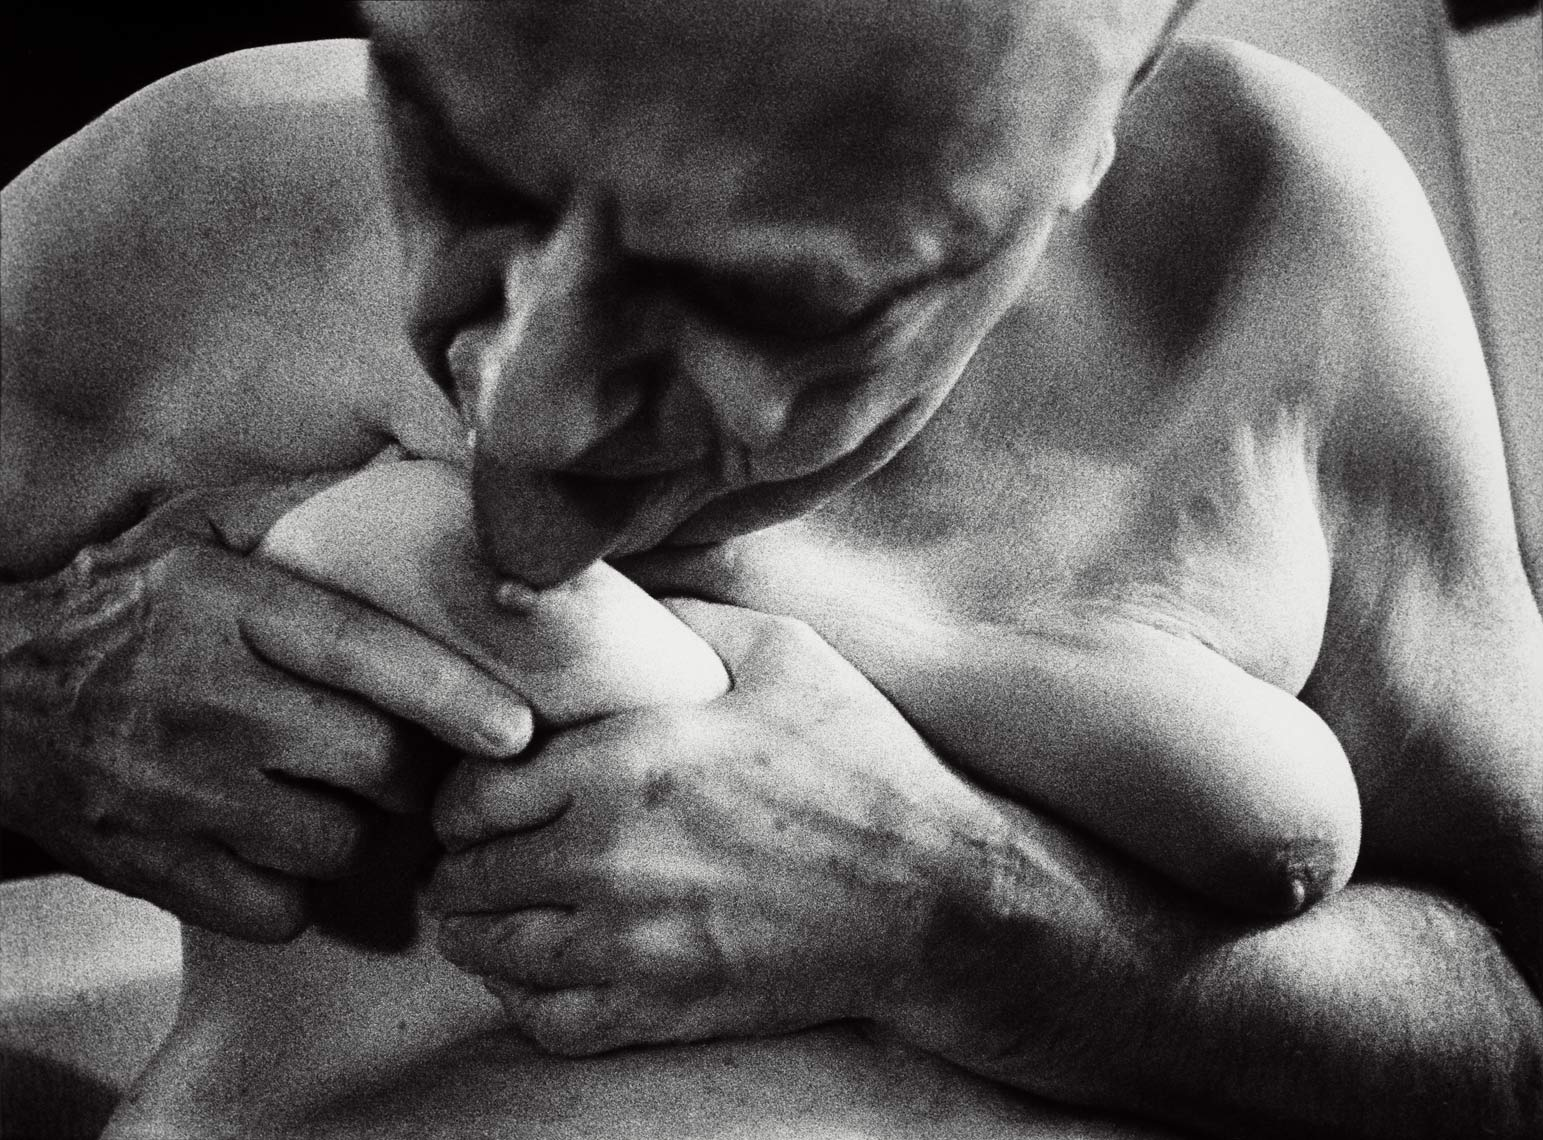 David Lebe; Ellis 4, 1989, male nude, black and white photograph